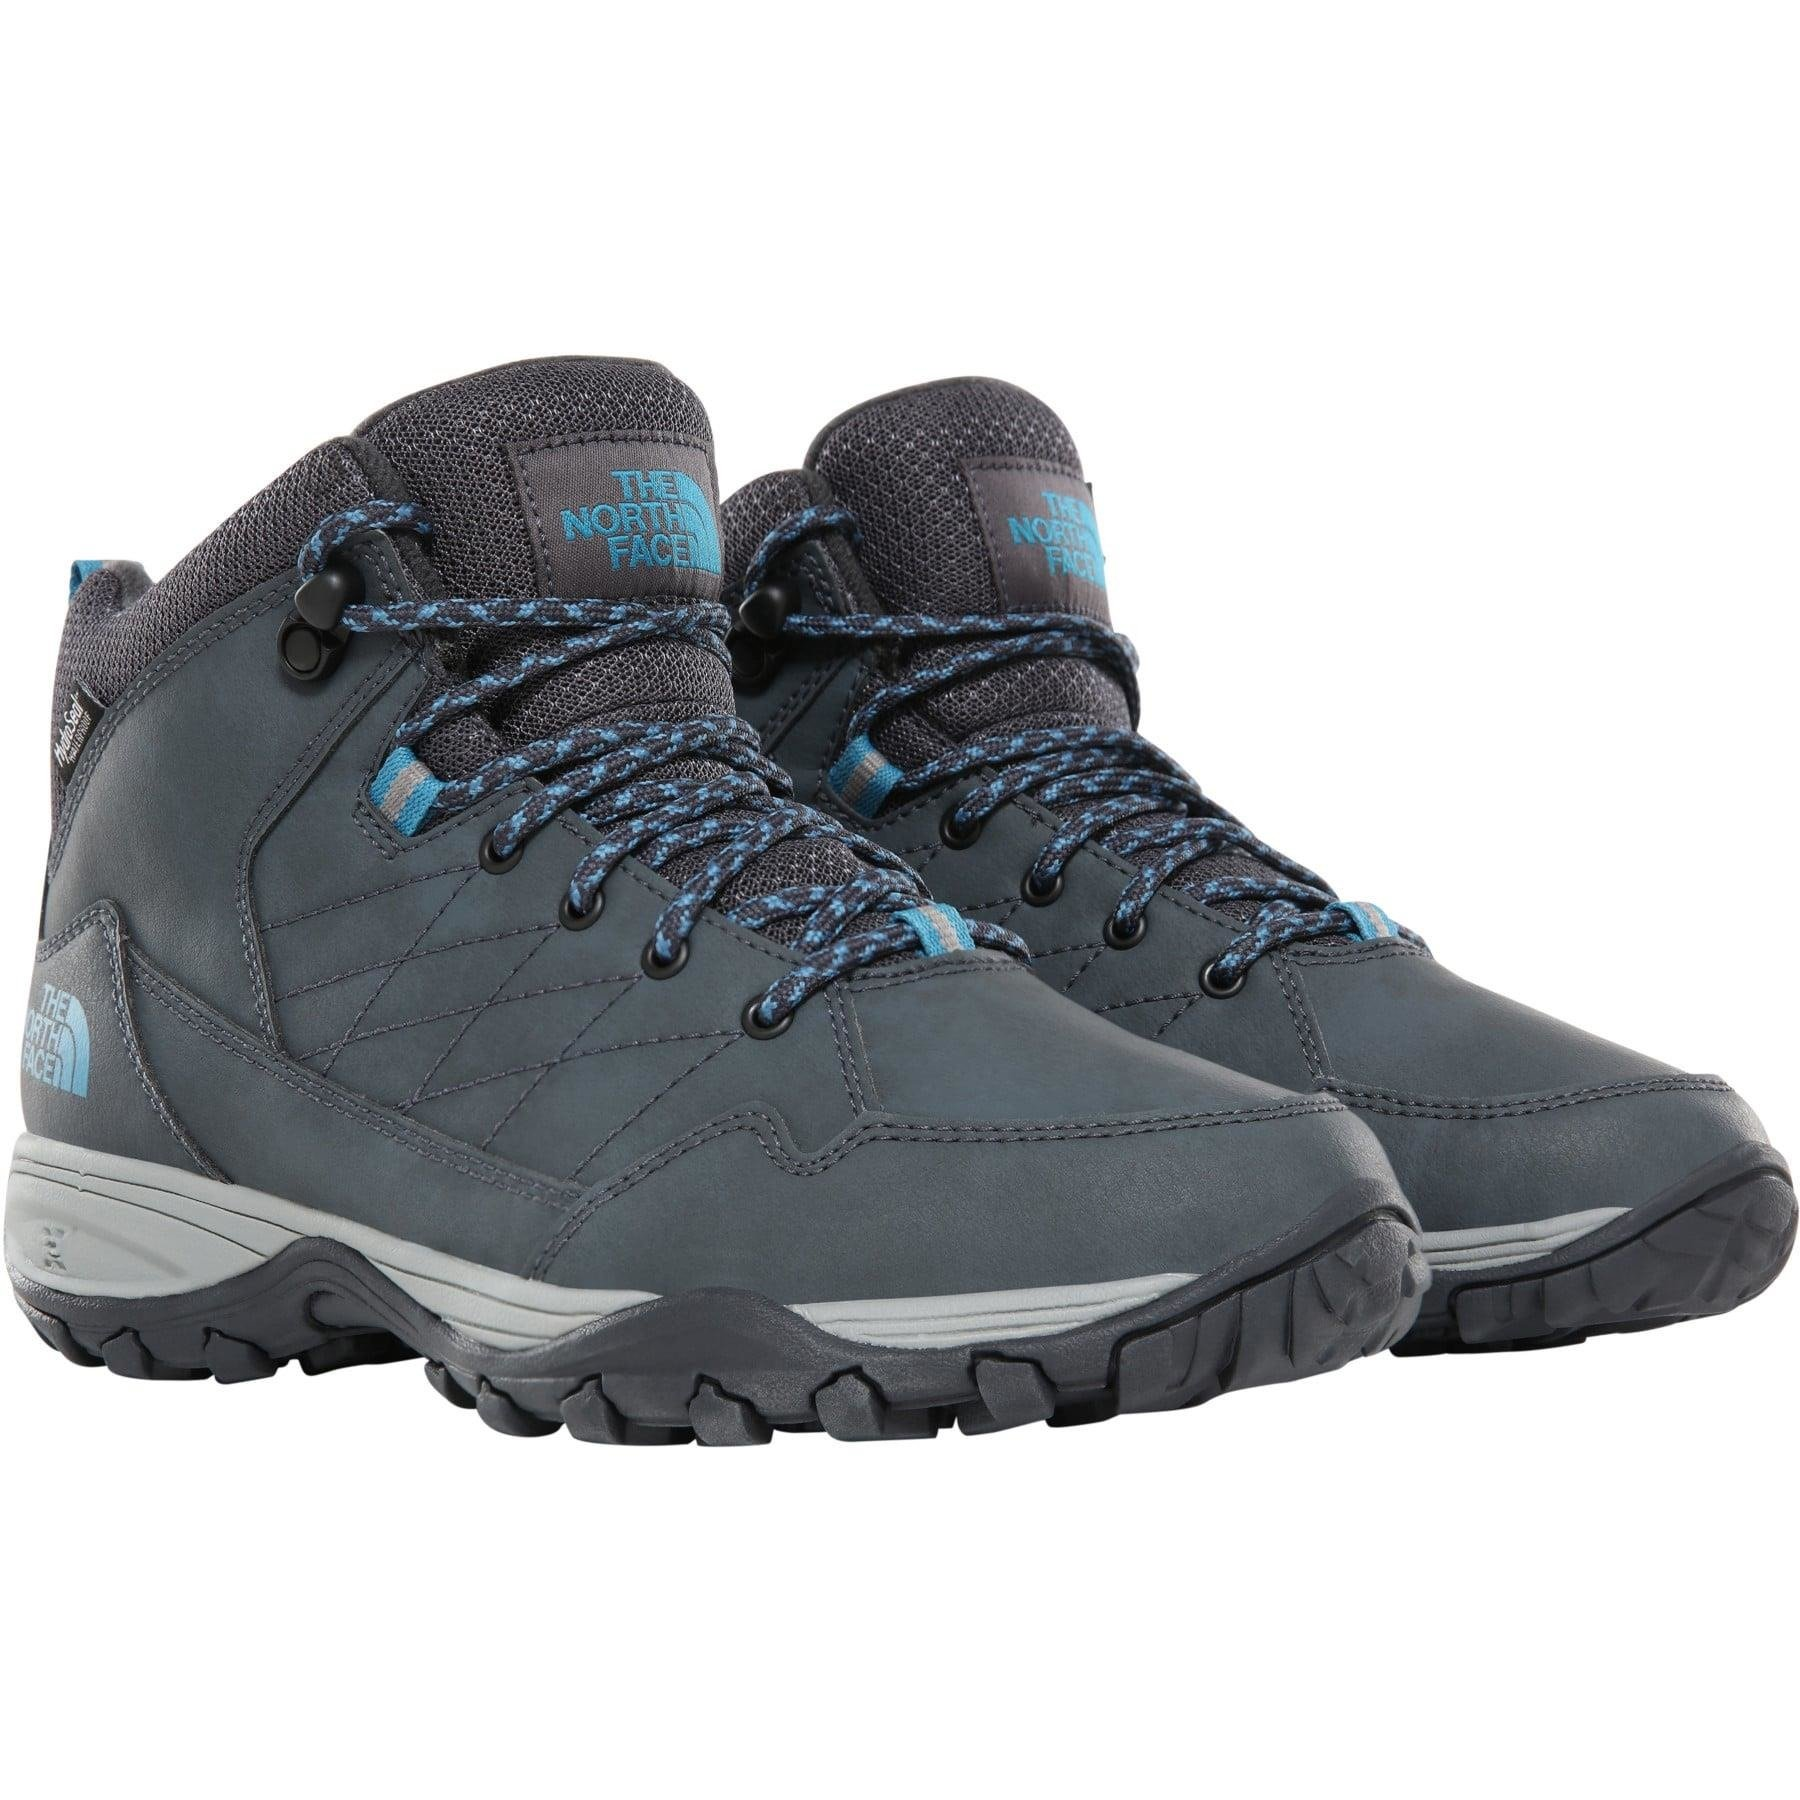 Buty zimowe The North Face Storm Strike II T93RRRGU8